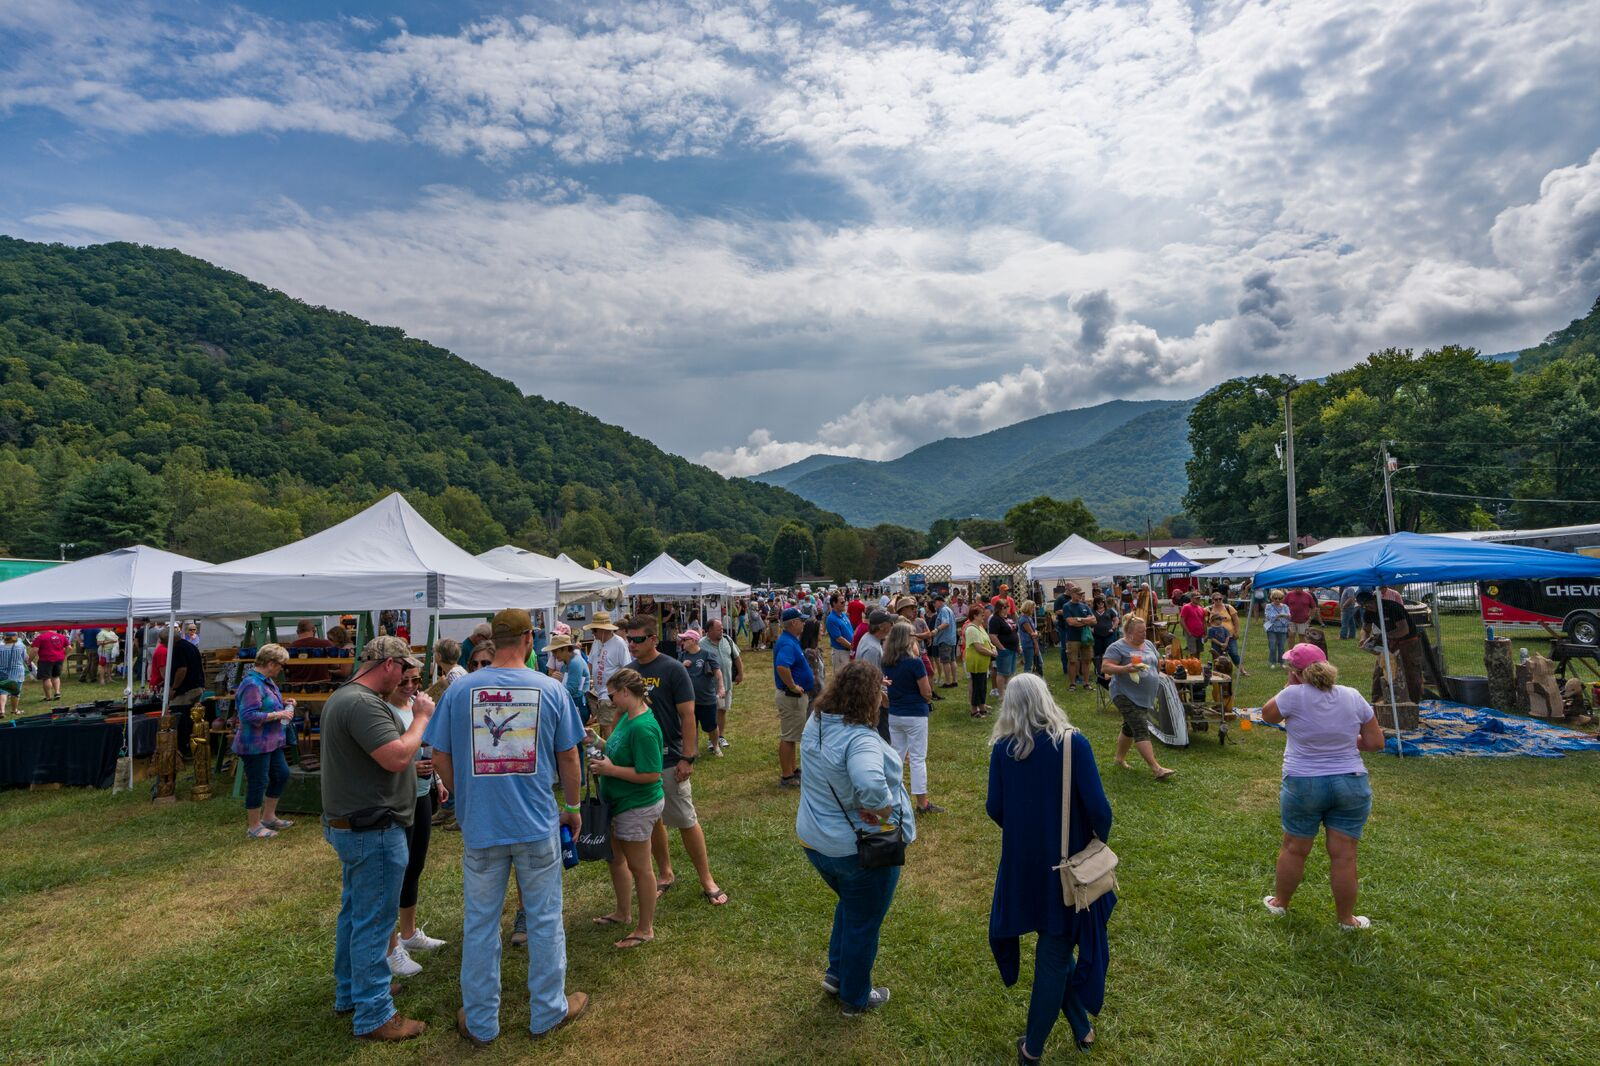 Haywood County 1 Elk Fest